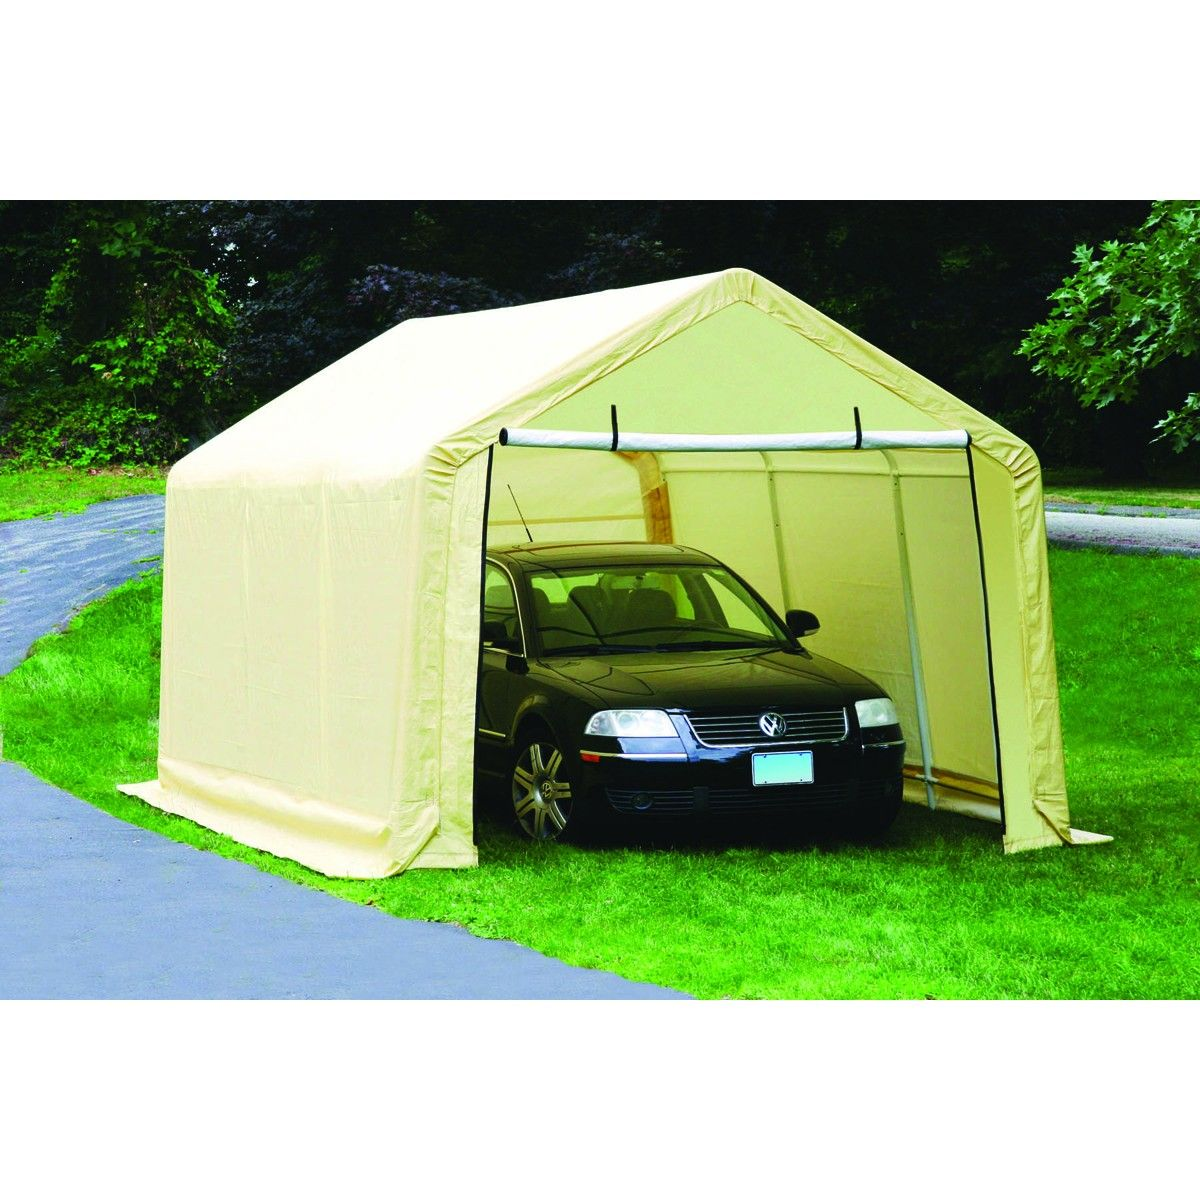 10 Ft X 17 Ft Portable Garage Portable Garage Car Canopy Portable Sheds